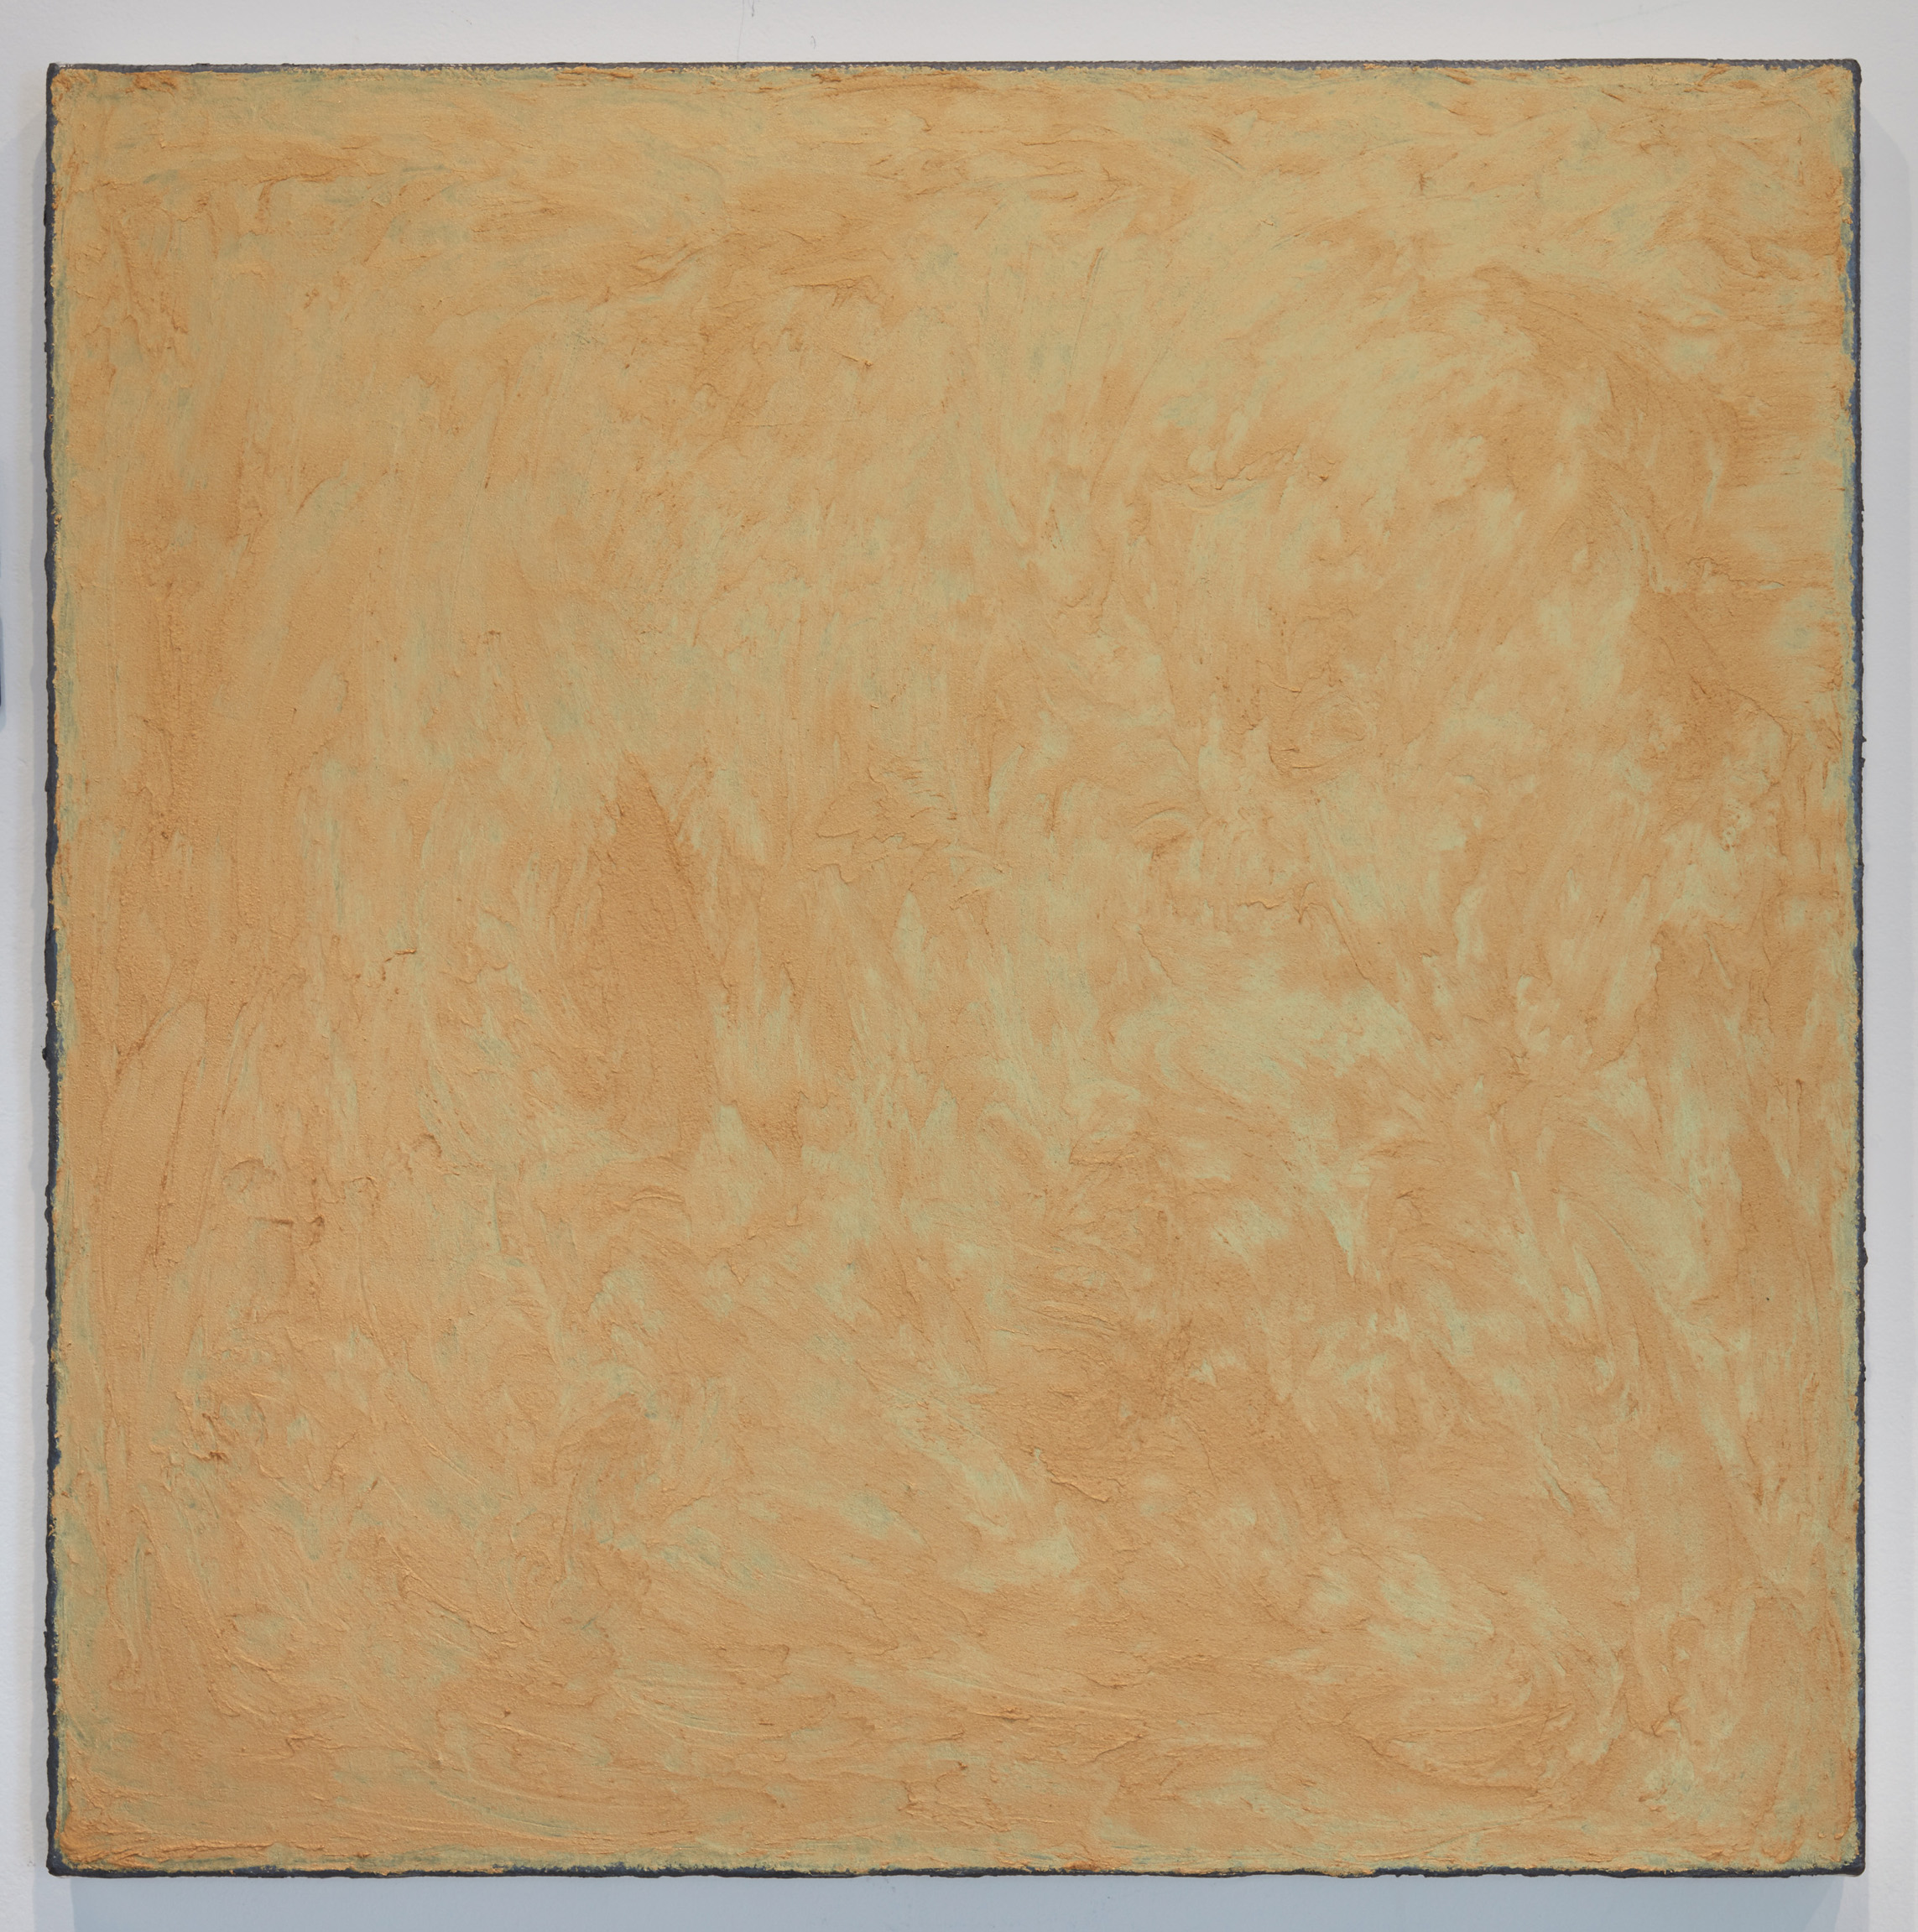 DAVID SERISIER  gold square painting , 2019 oil, wax and enamel on linen 84 x 84 cm